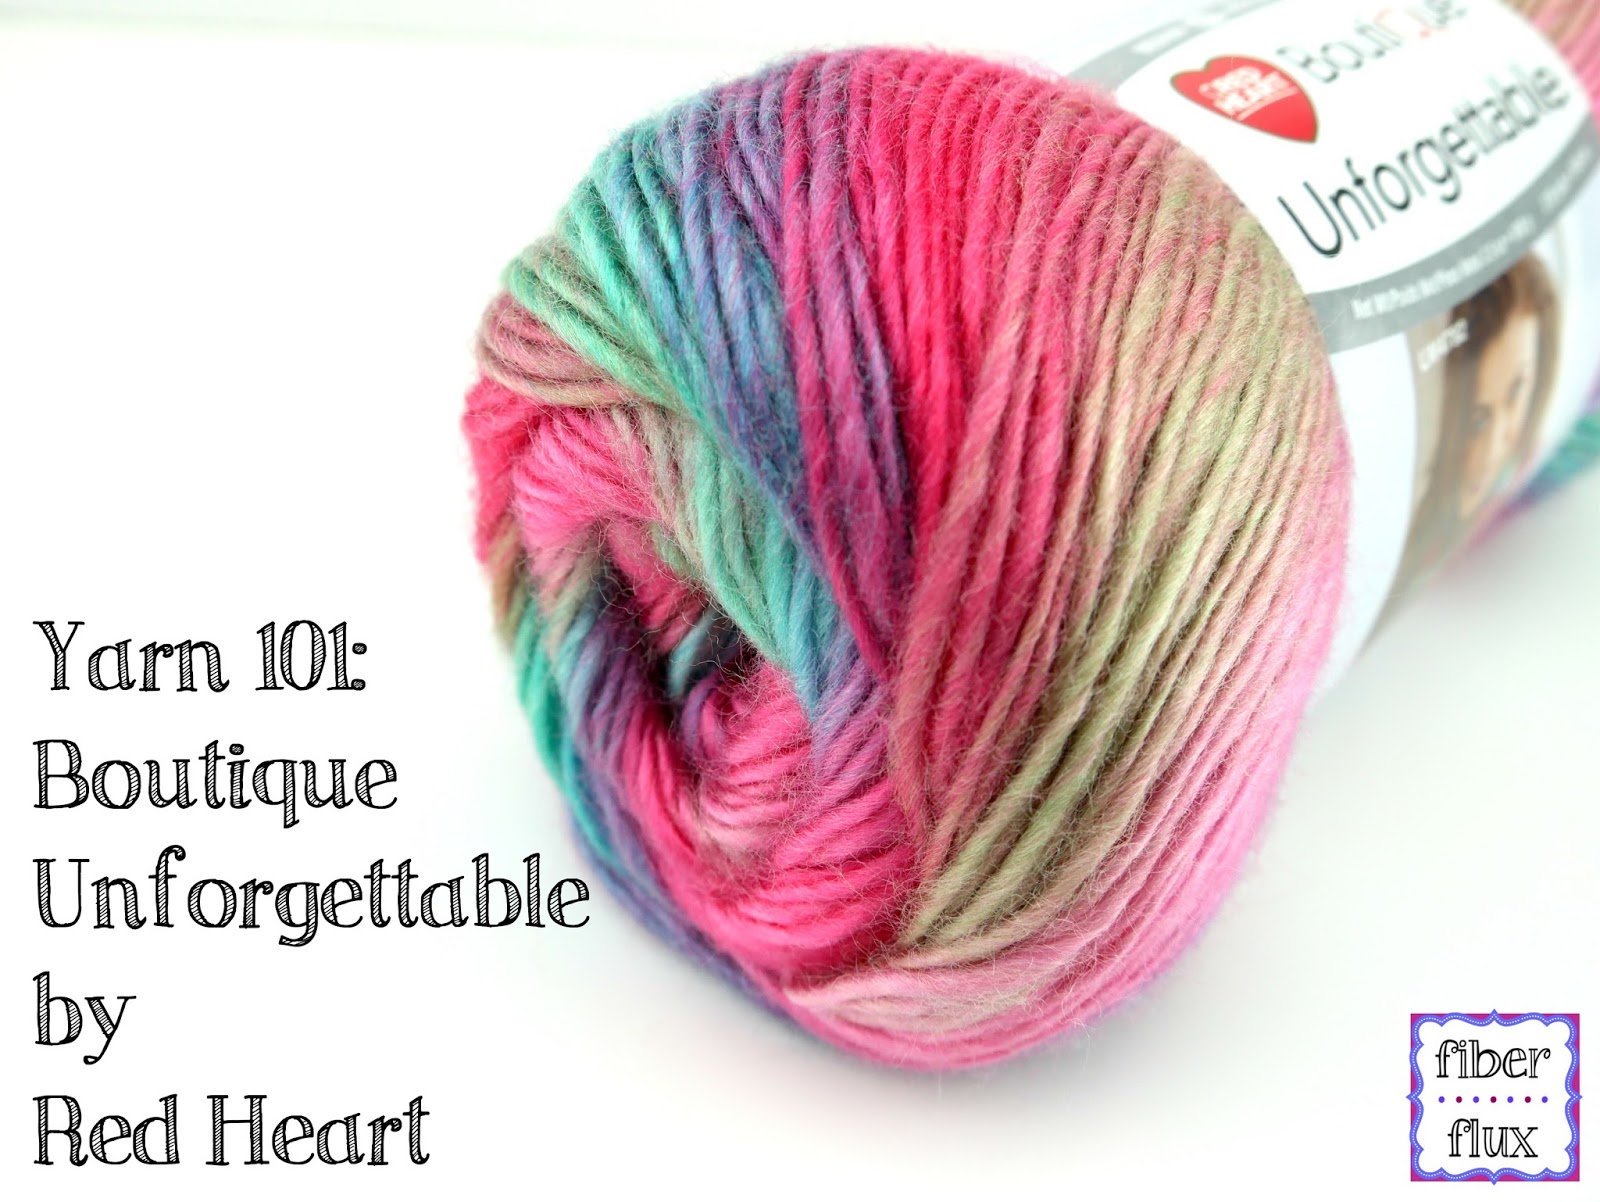 Knitting Patterns Using Red Heart Boutique Unforgettable Yarn : Fiber Flux: Yarn 101: Boutique Unforgettable By Red Heart